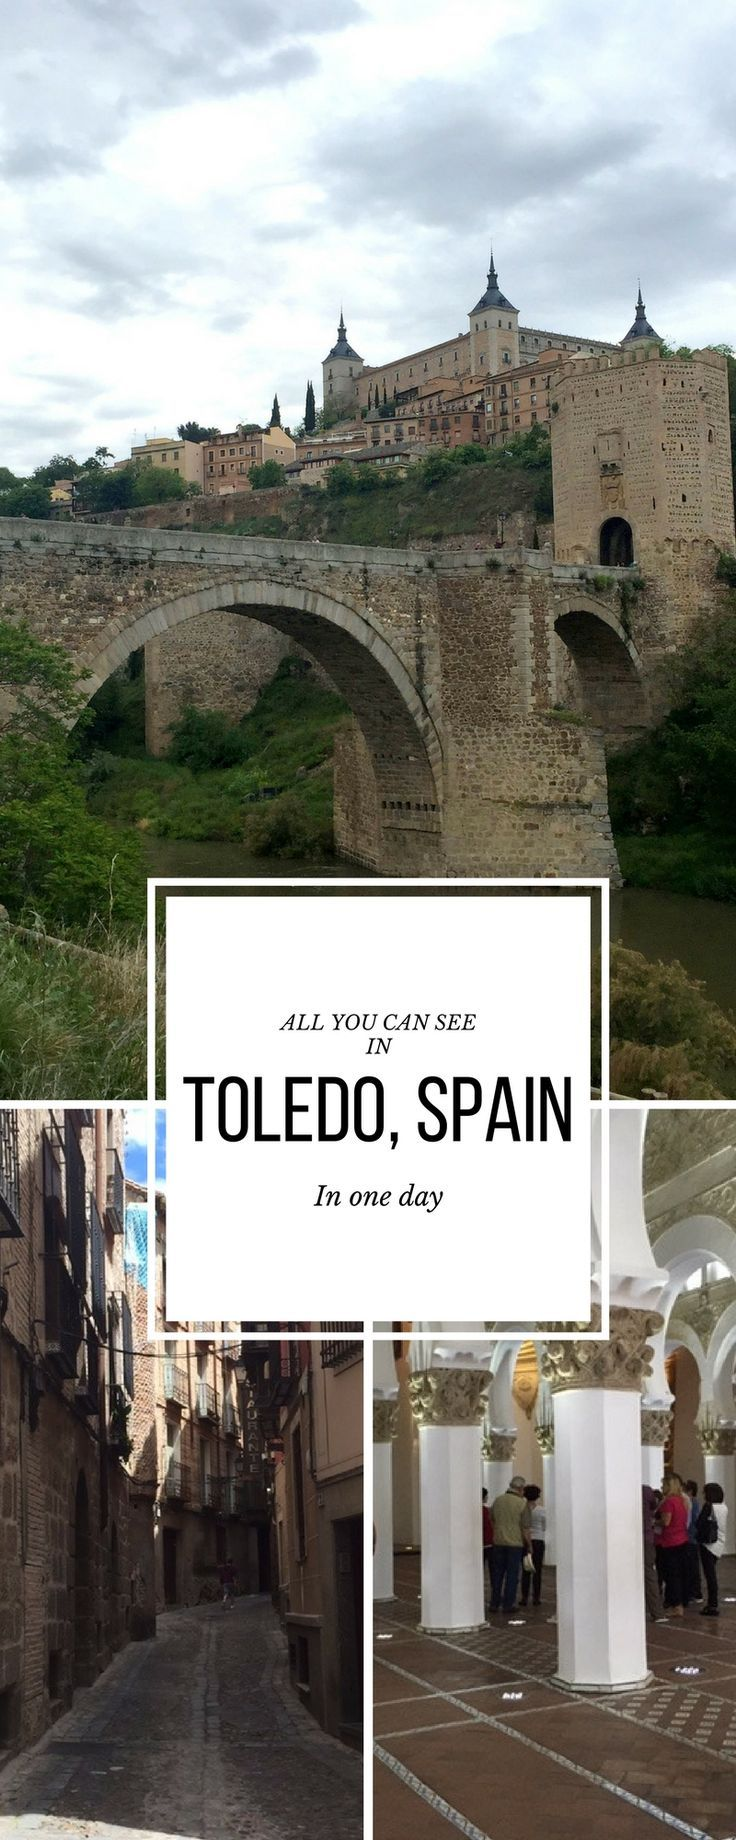 Discover all you can see in Toledo, Spain in one day. Toledo is a beautiful medieval town and the perfect destination for a day trip from Madrid: discover Toledo's must see attractions and practical advice on how to make the most of one day in Toledo, Spain